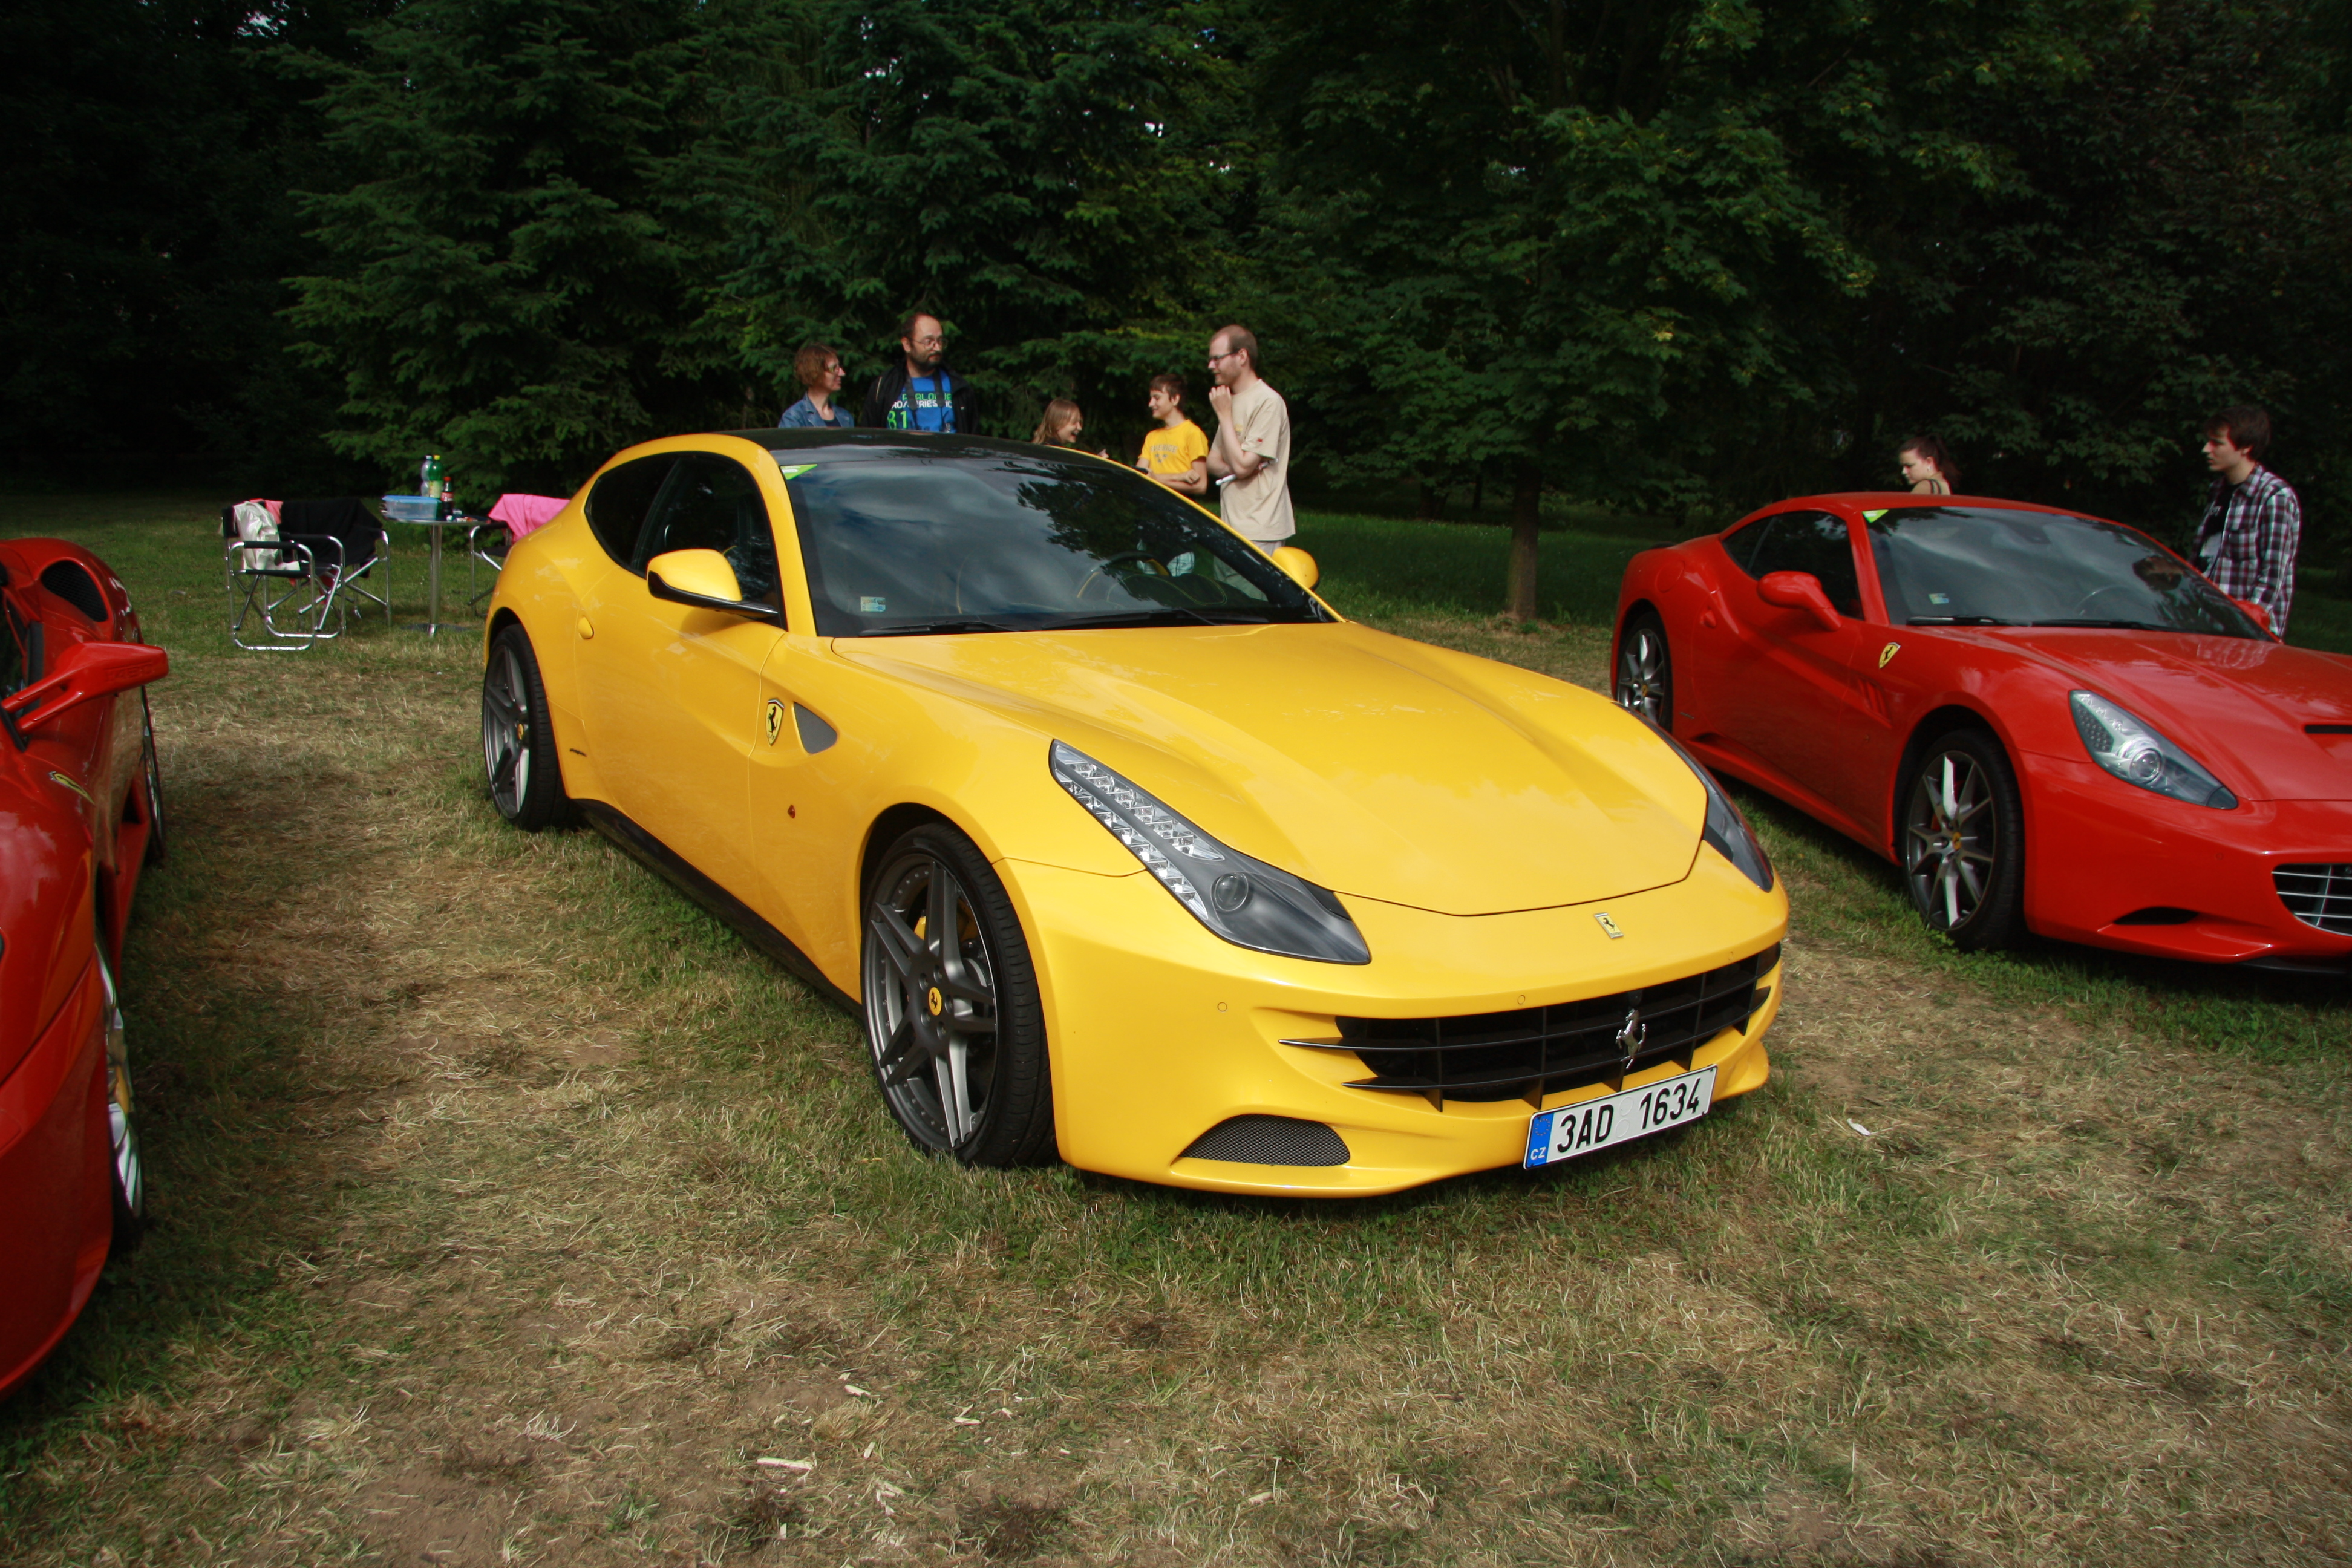 File:Ferrari FF at Legendy 2014.JPG - Wikimedia Commons